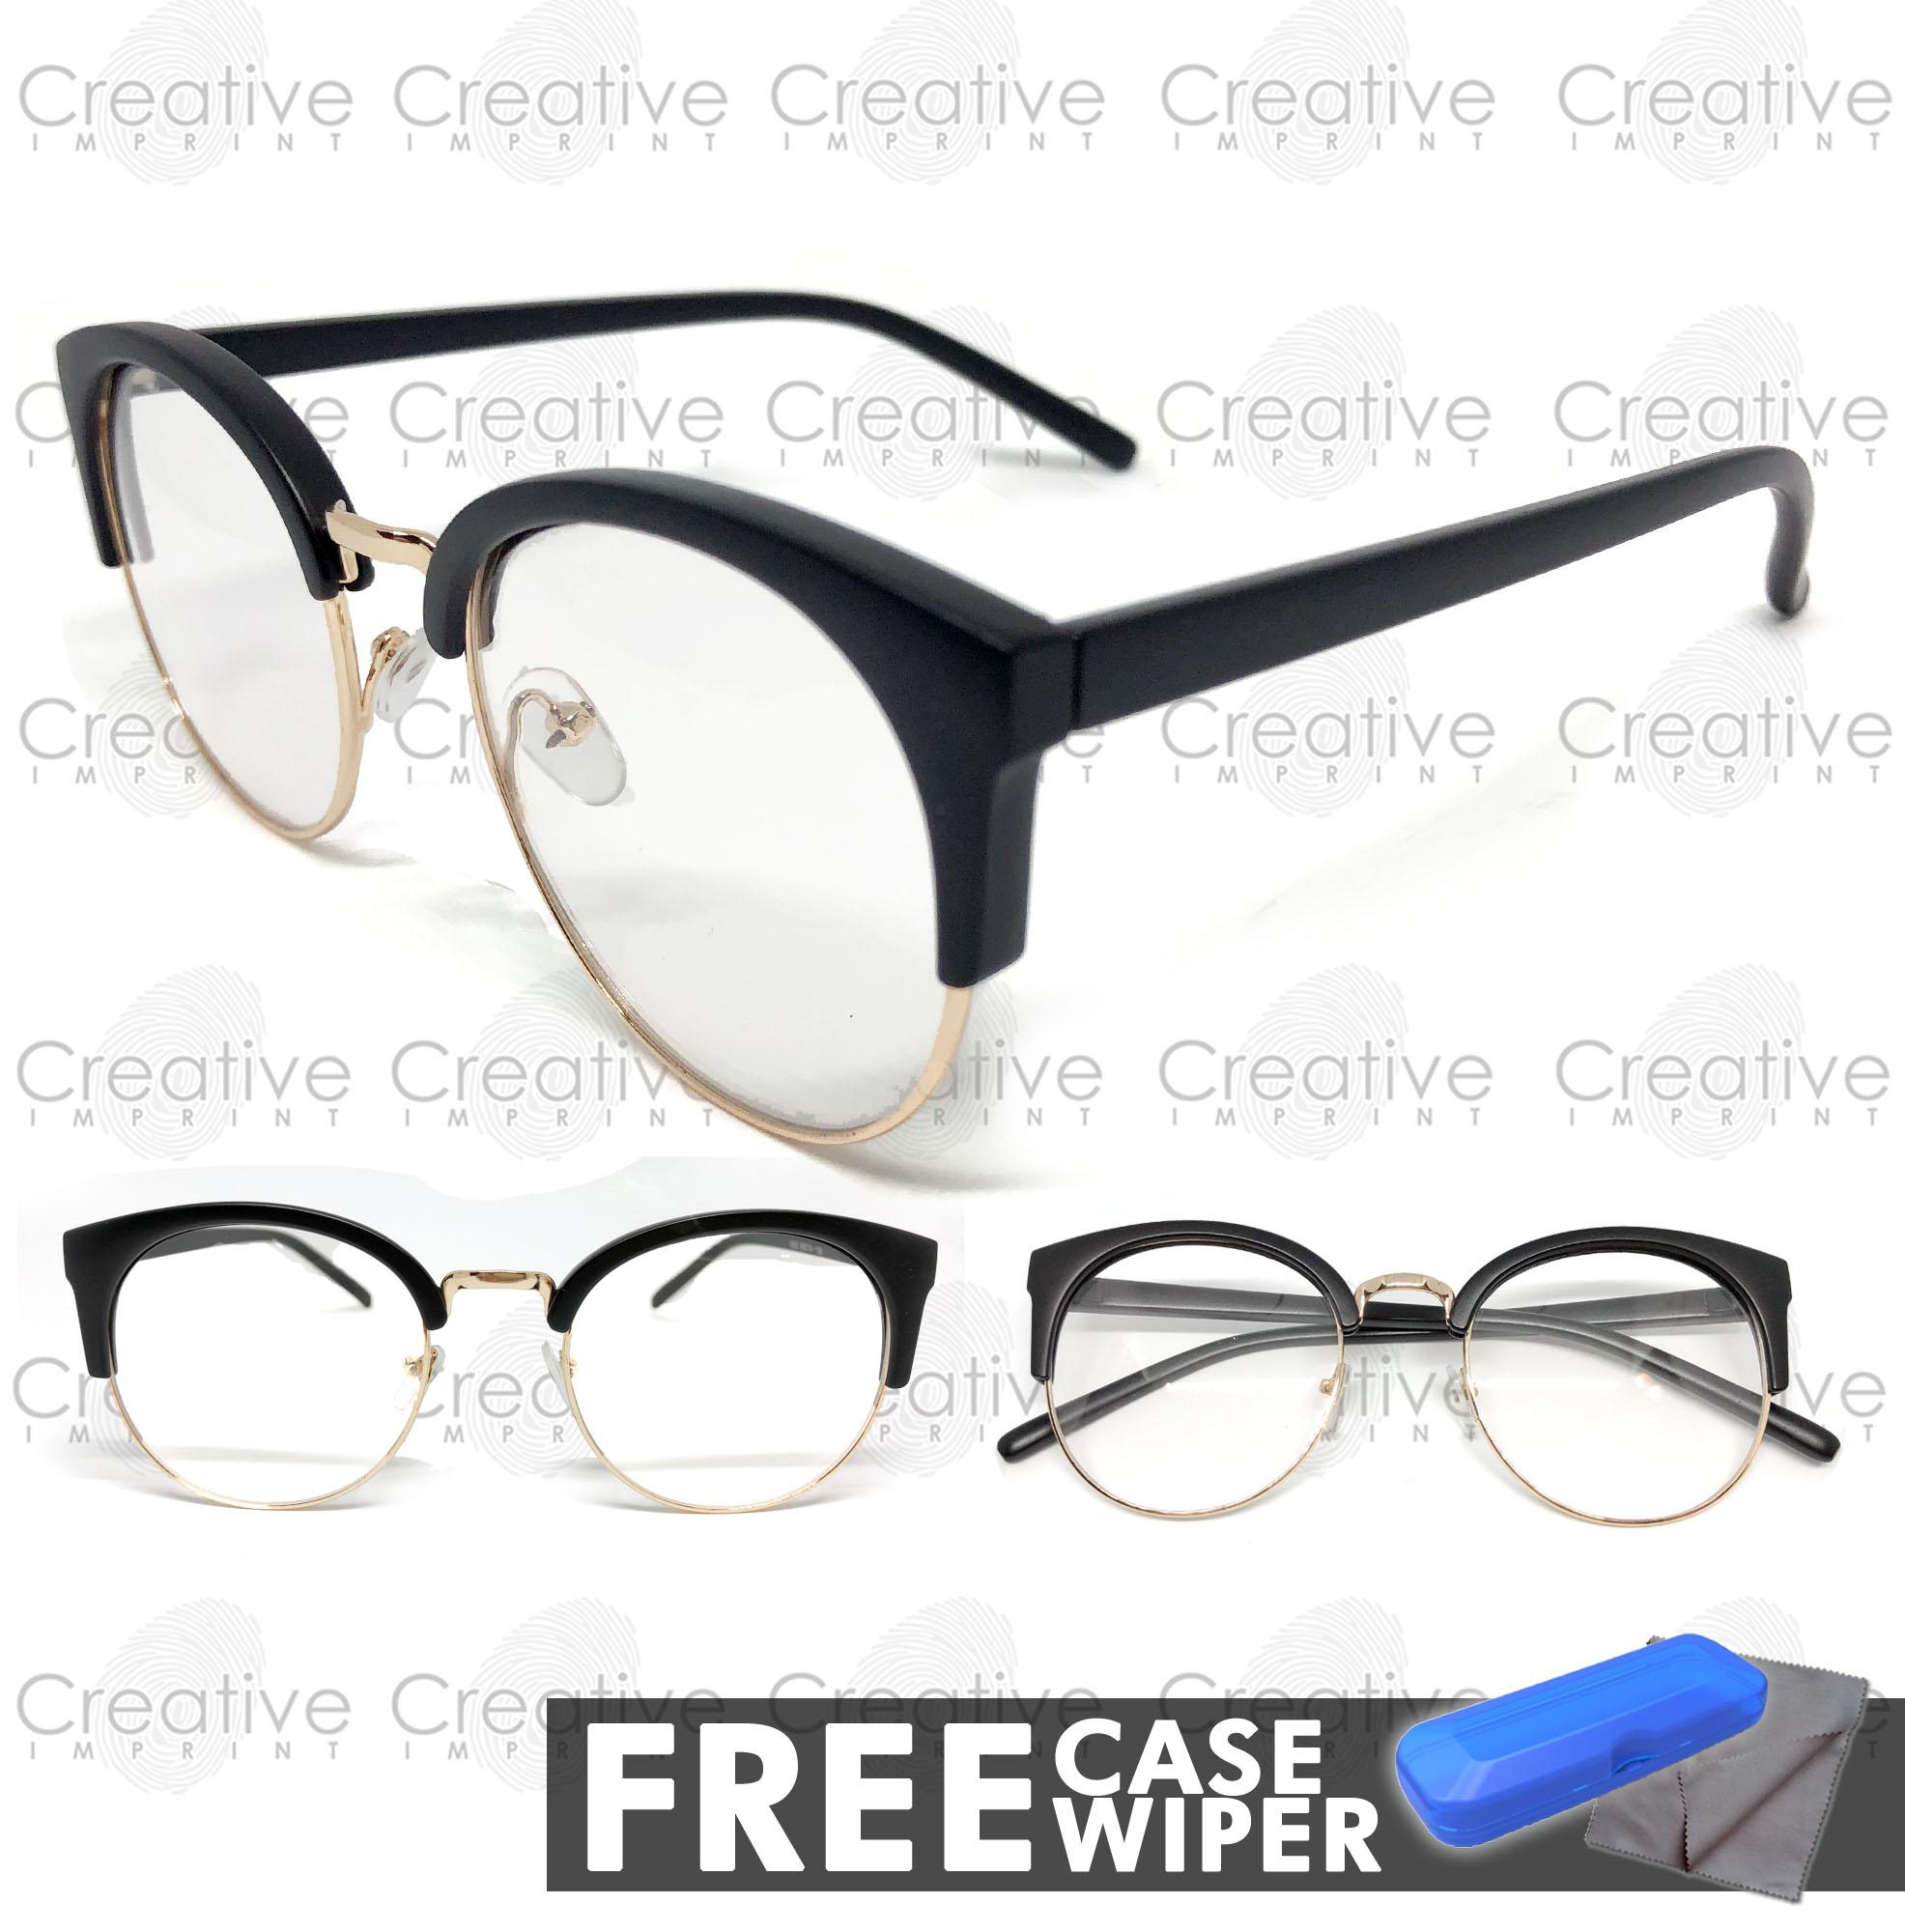 ae356dc3beb1 Creative Imprint Eyeglasses Replaceable Lens (Clubmaster 02 Black Gold  Matte) Premium High Quality Specs Metal